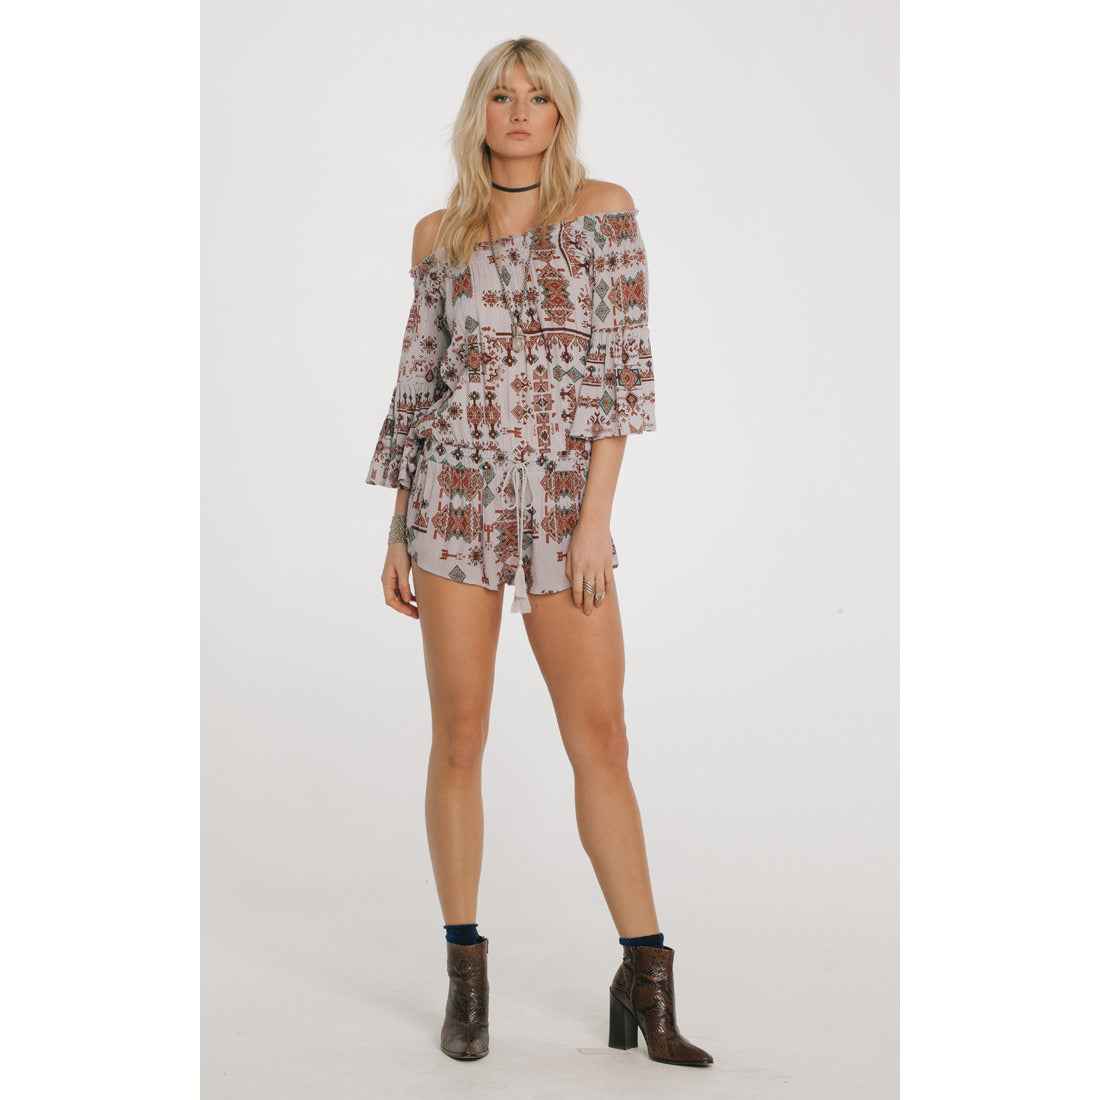 Native Dreams Romper in Grey